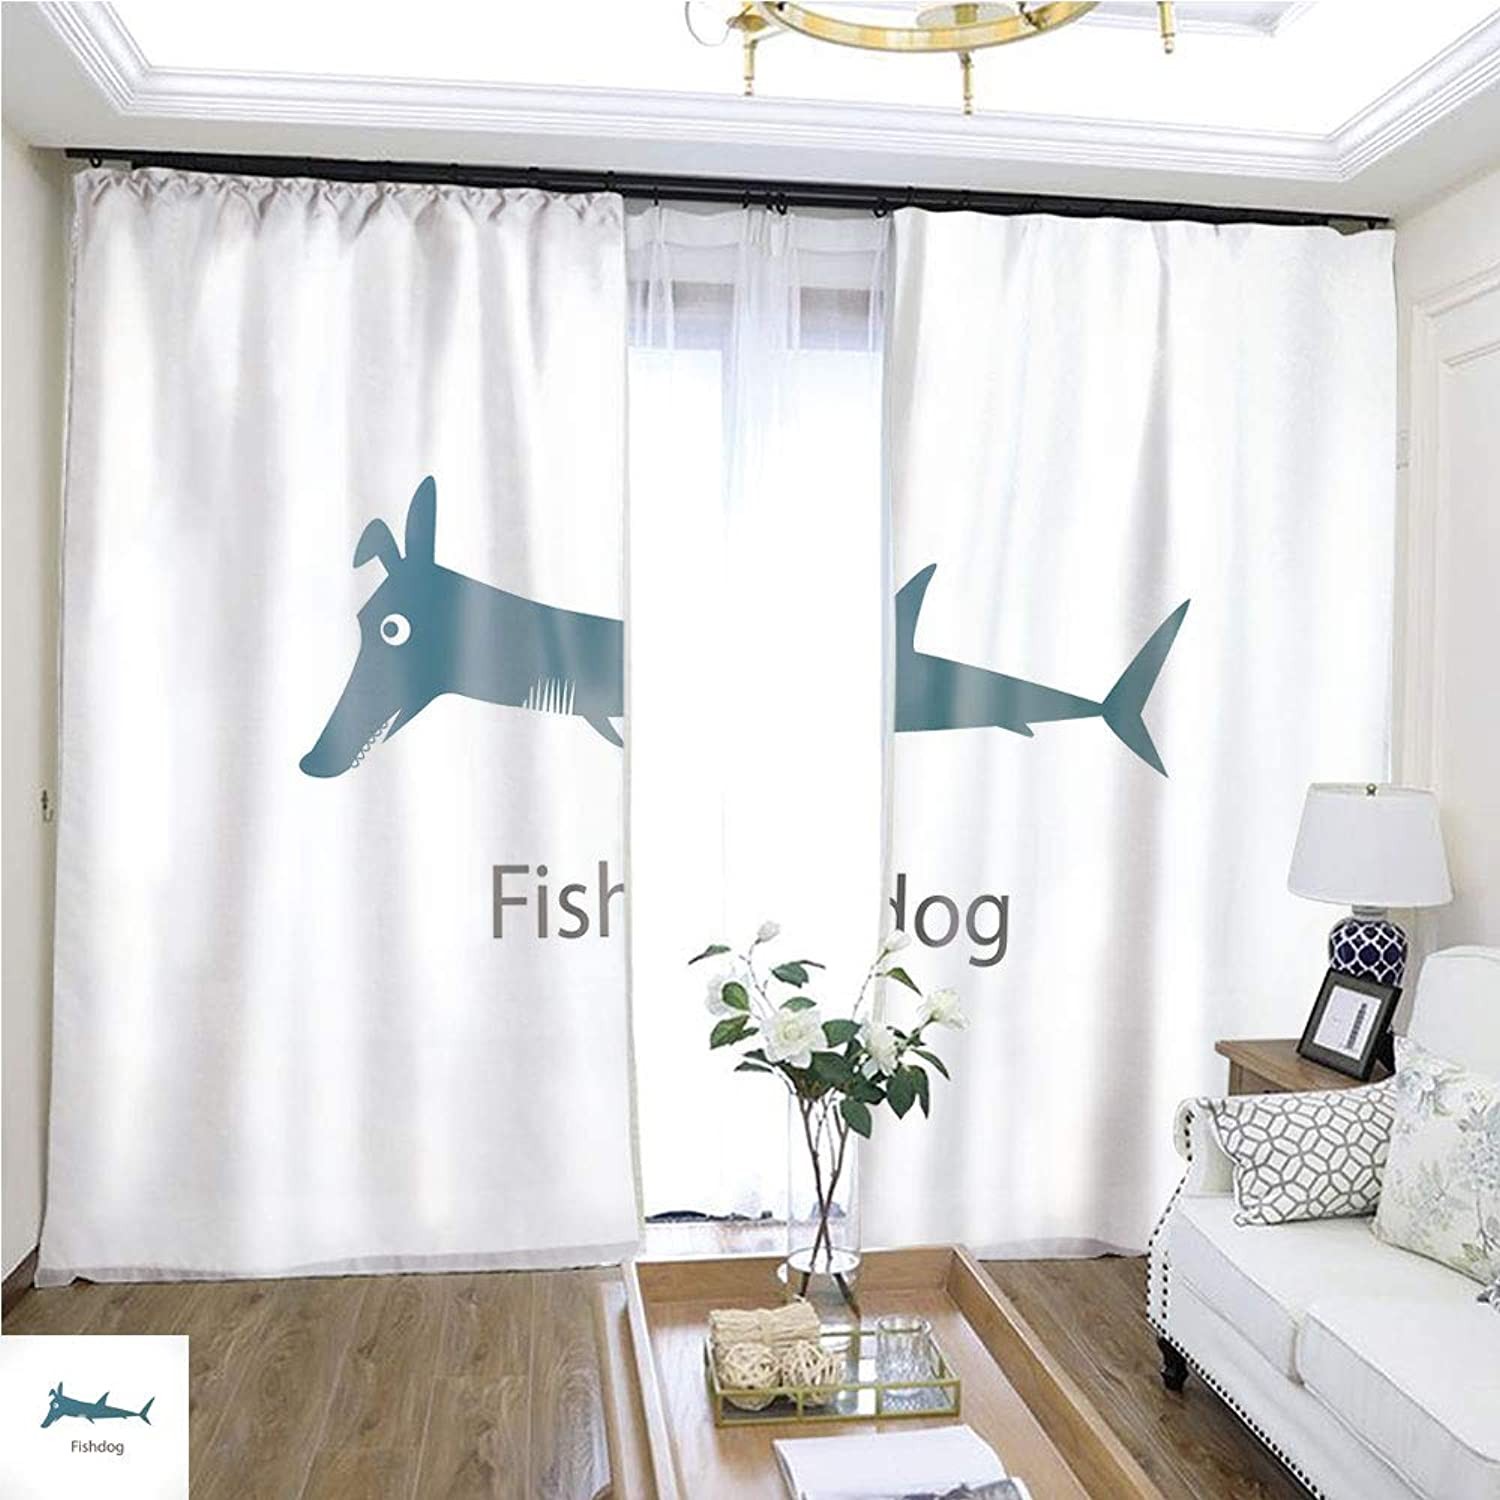 Air Port Screen Fish Dog W96 x L156 Create Warmth in Winter Highprecision Curtains for bedrooms Living Rooms Kitchens etc.